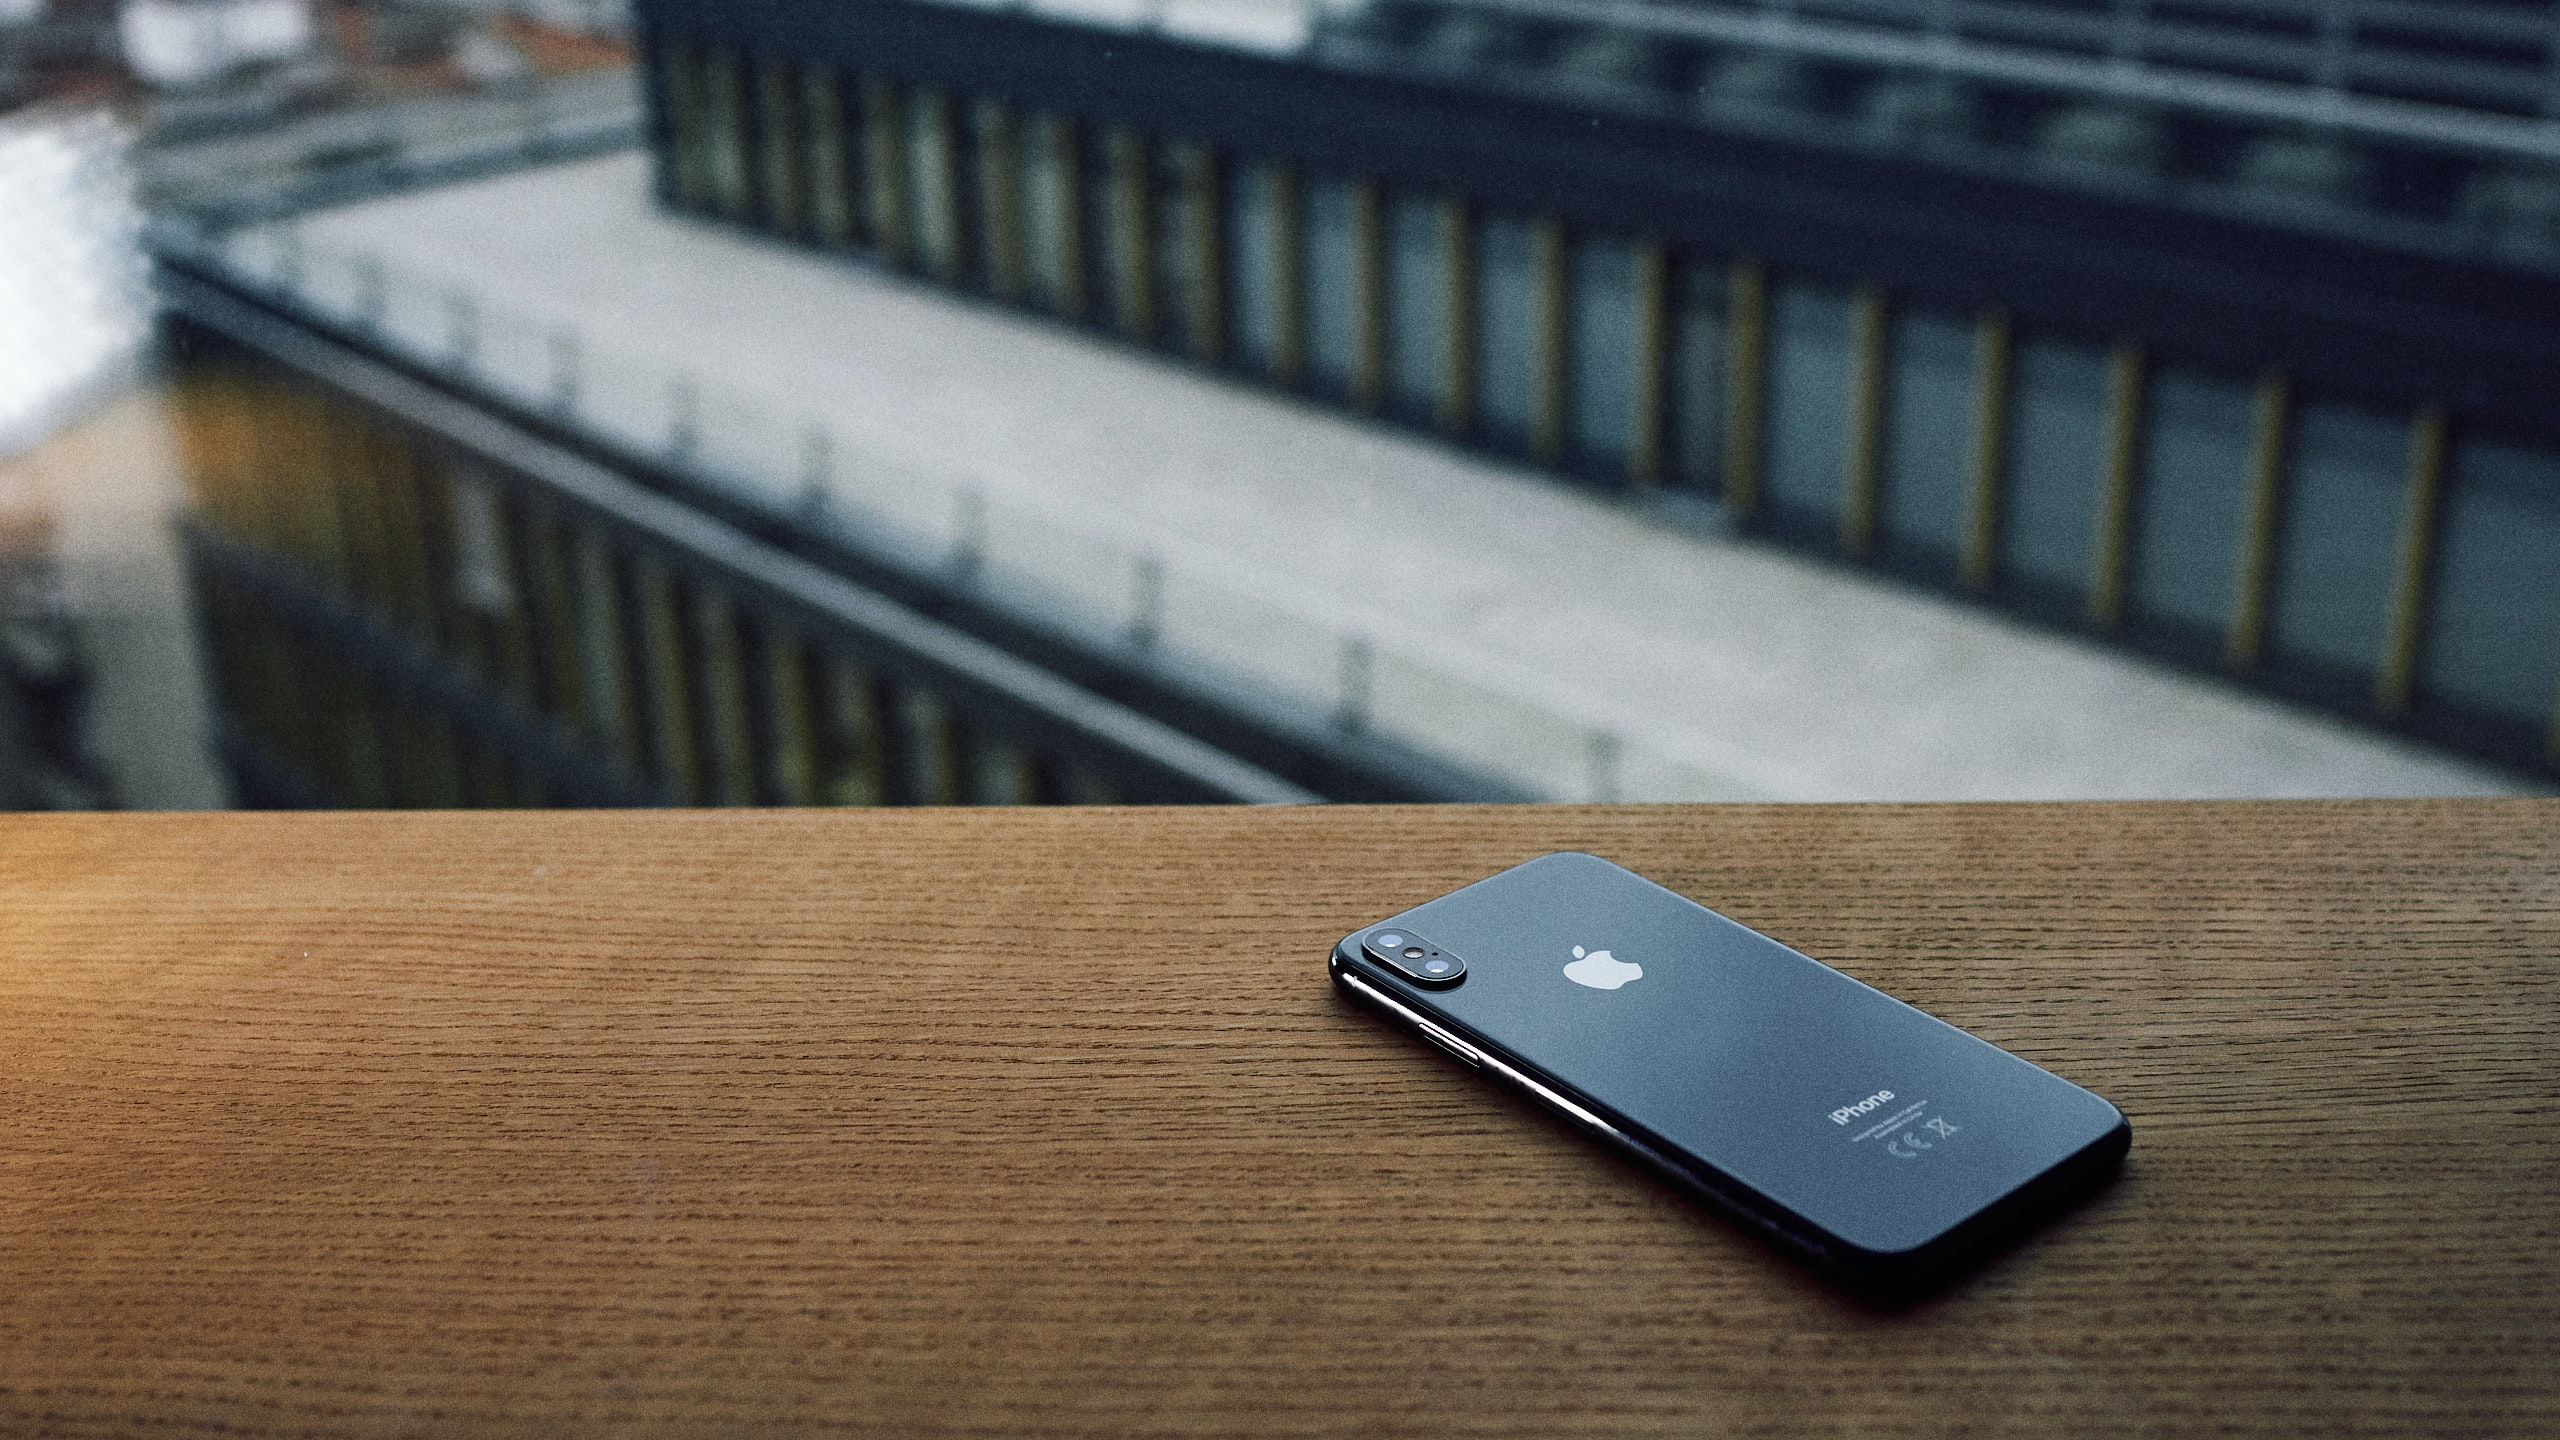 focus photo of space gray iPhone X on brown wooden table